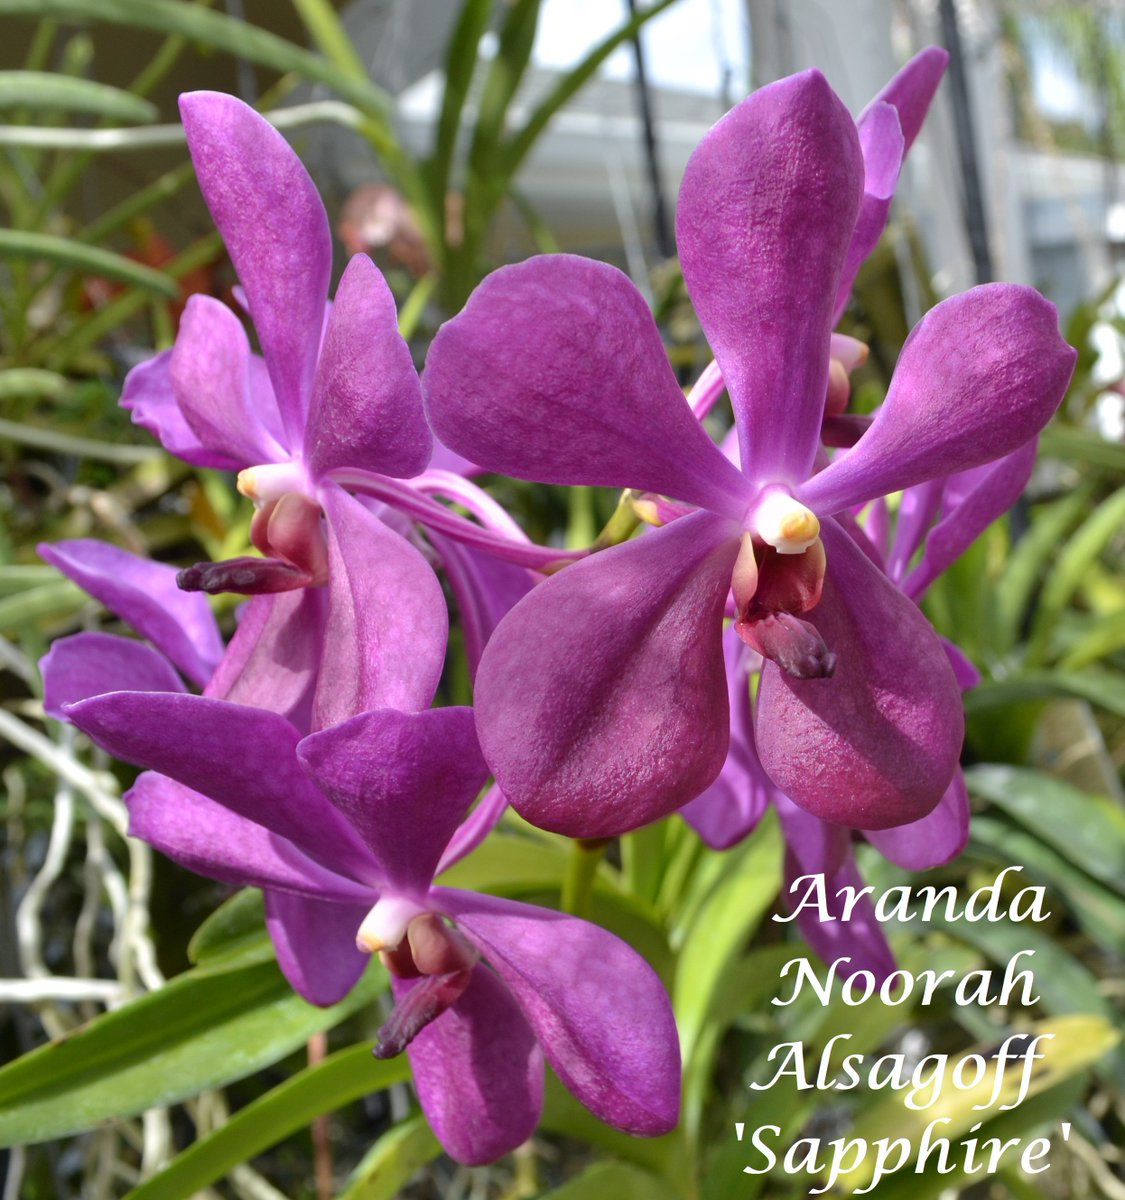 I am partial to the Aranda flower shape and the lovely array of colors they come in. #vanda, #orchids, #aranda, #flowers<br>http://pic.twitter.com/35FI0nu2Dj